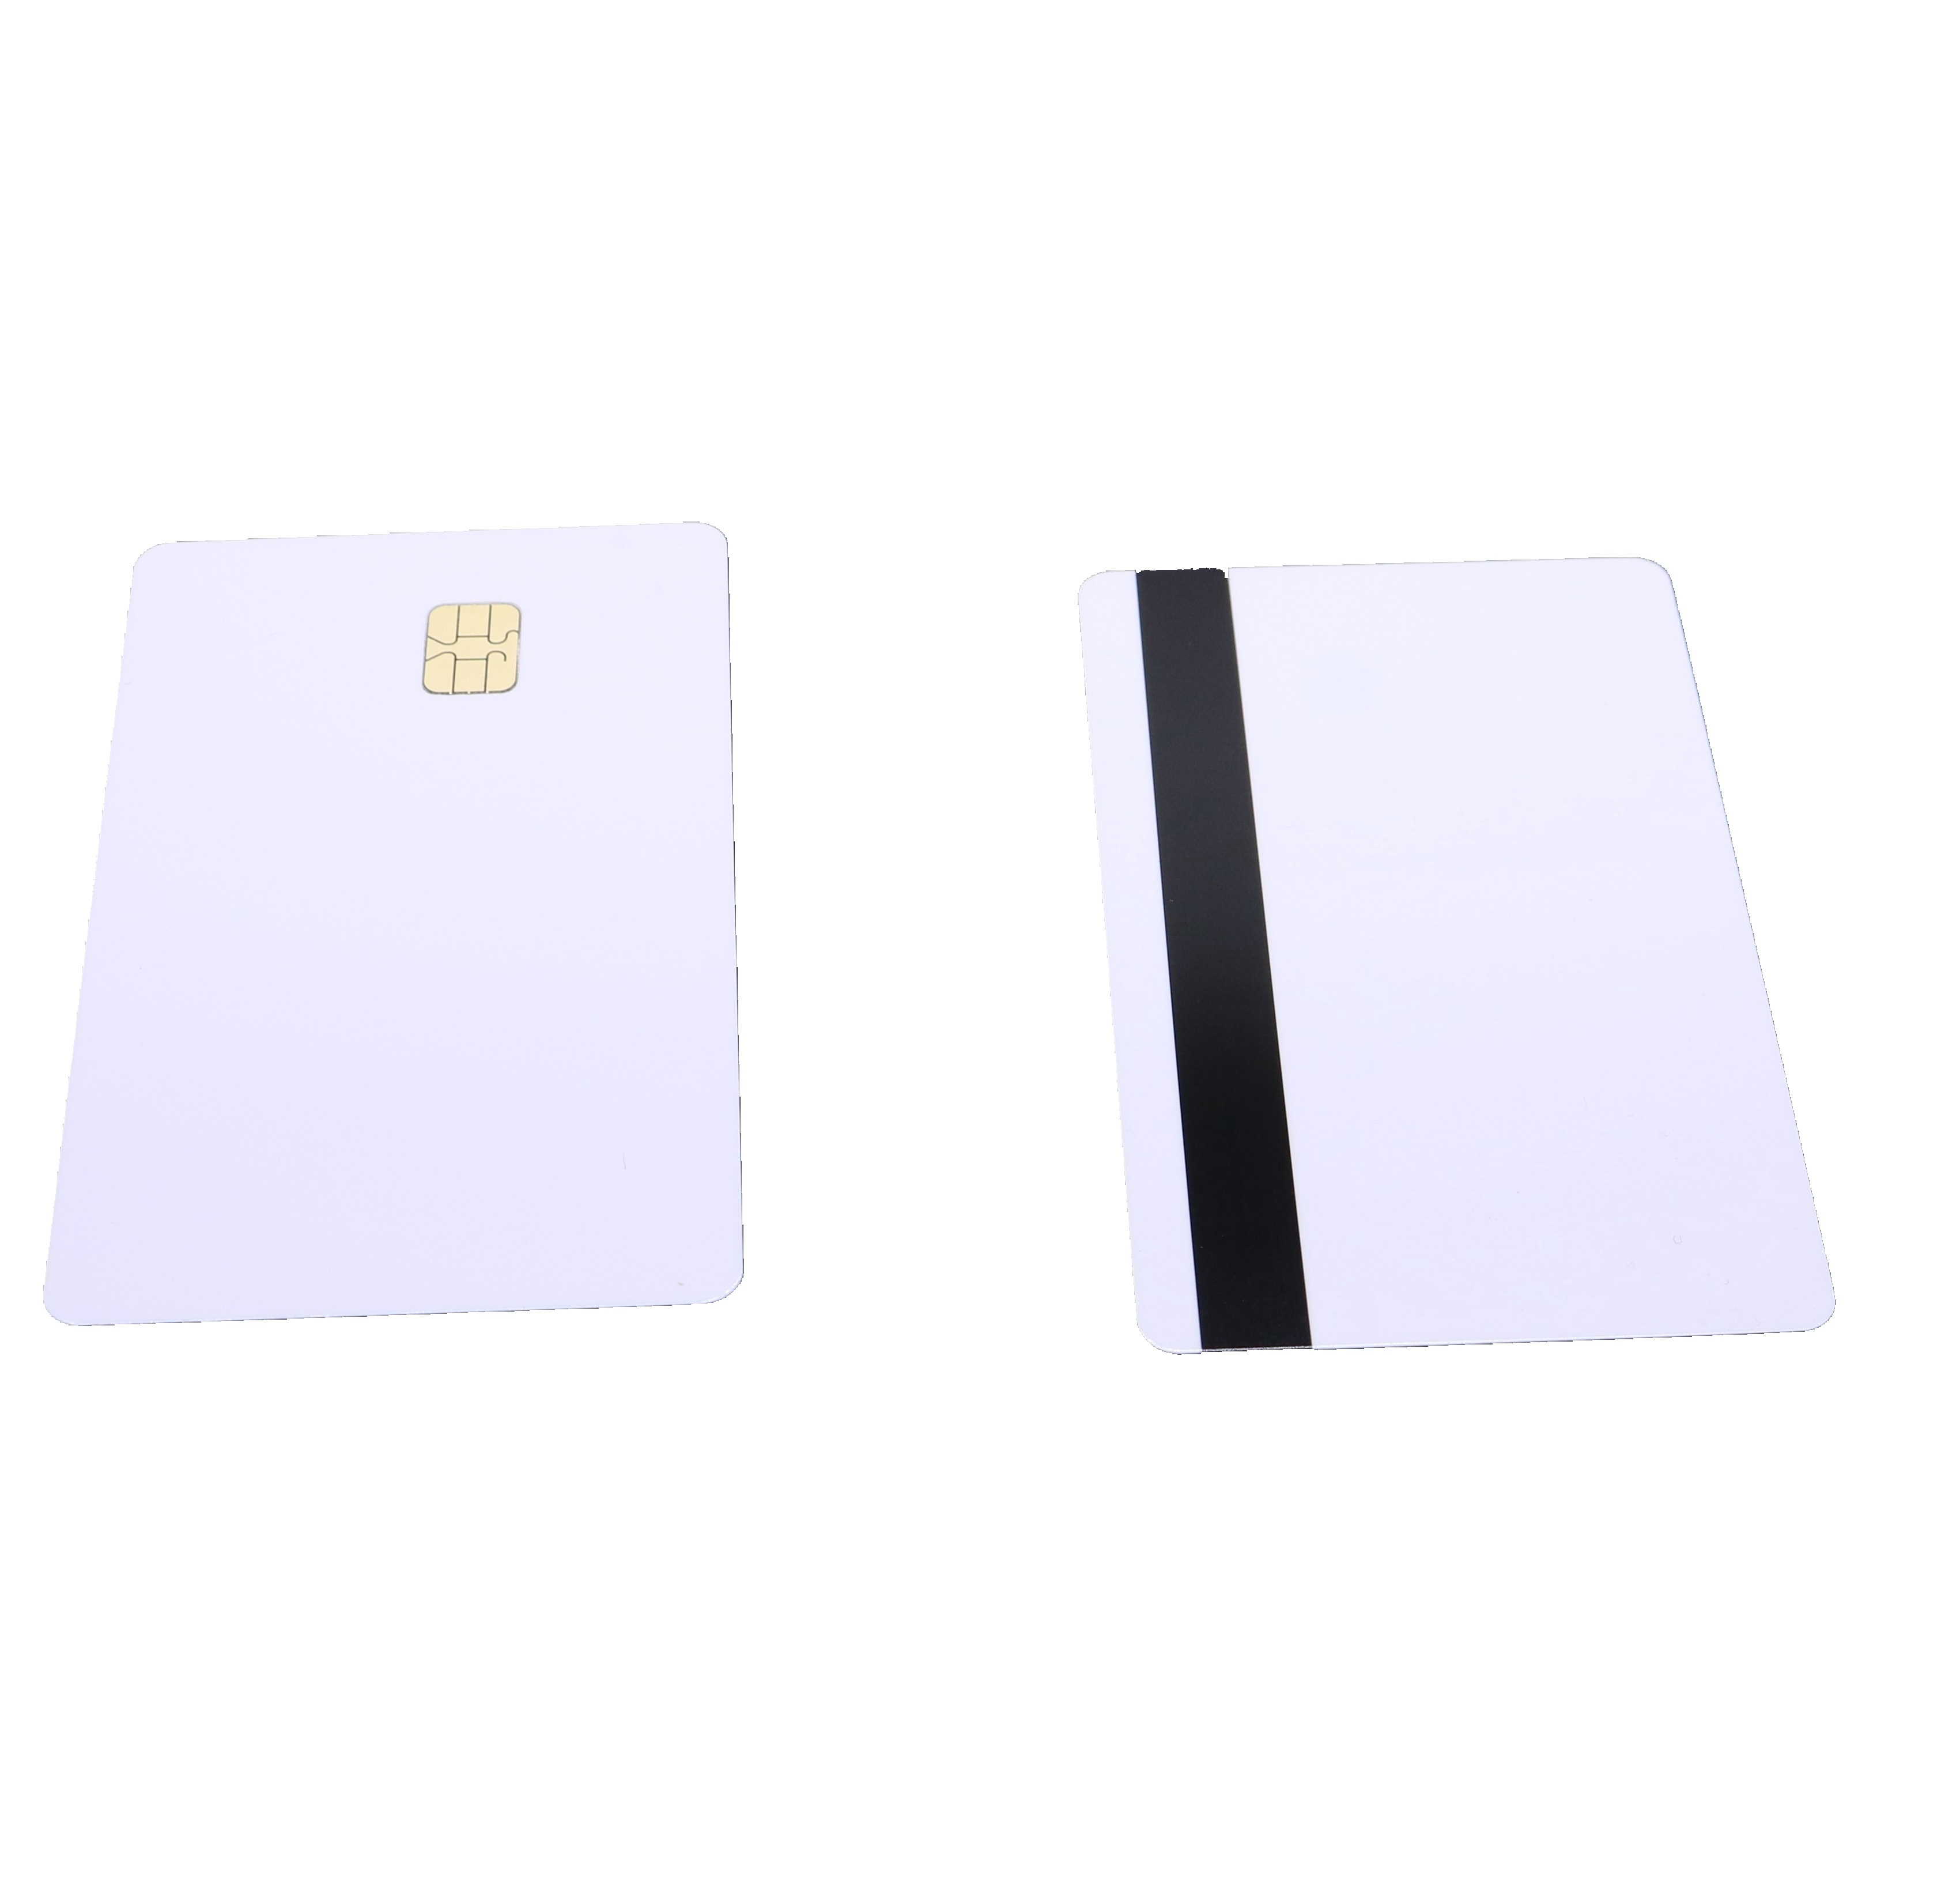 SLE4442 Chip 8mm 3track Hi CO Magnetic Stripe Contact IC Composite Card(China)